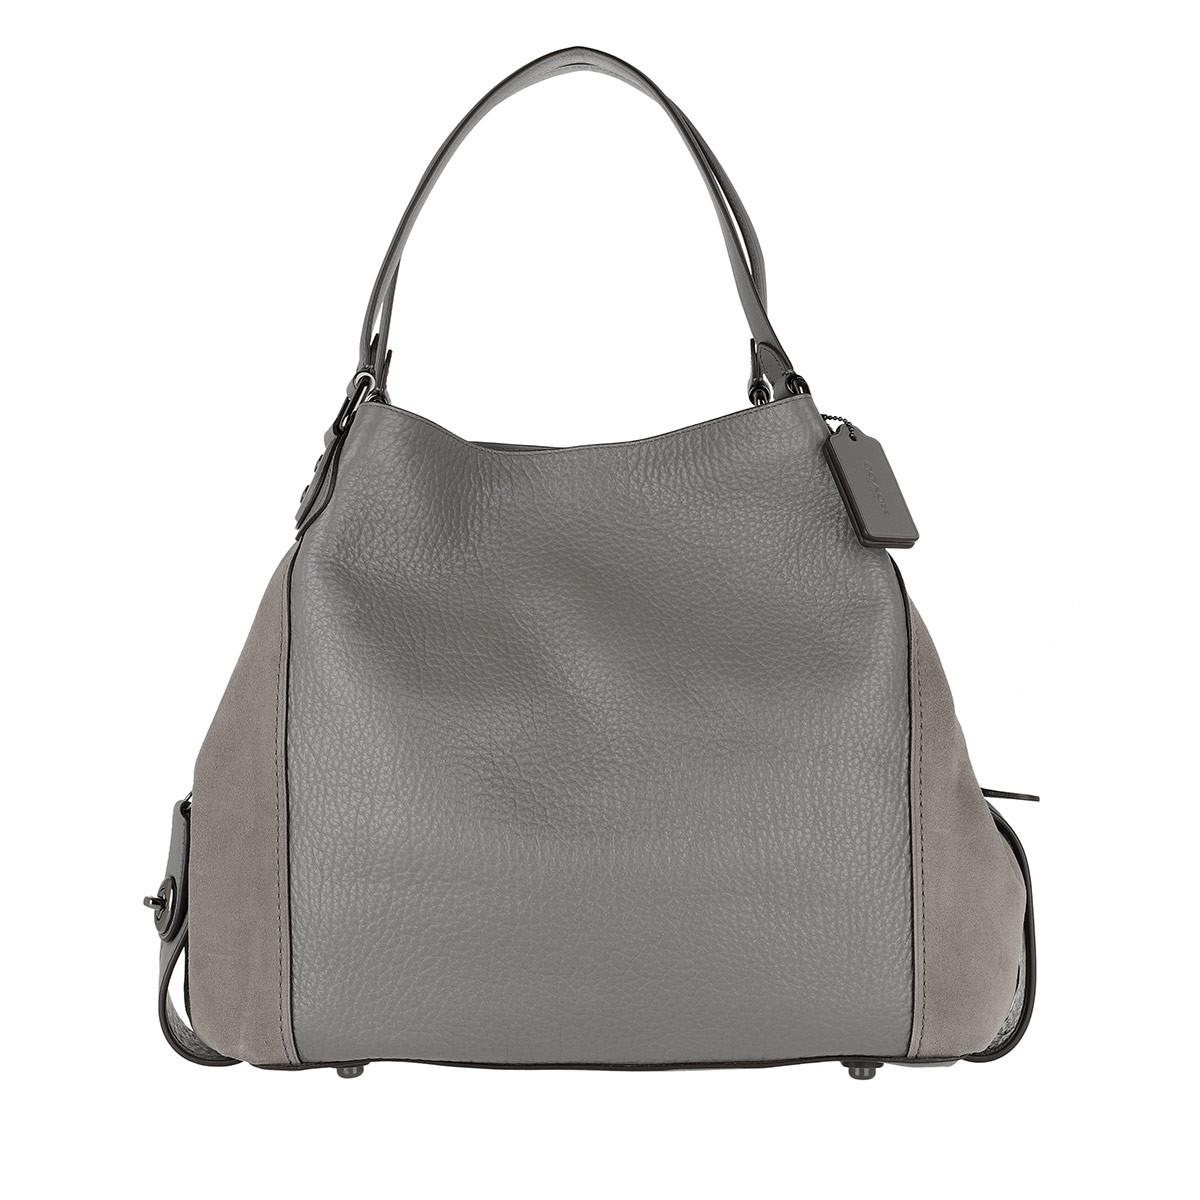 Tote - Edie 42 Mixed Leather Shoulder Bag Heather Grey - grey - Tote for ladies Coach 5FbuUn